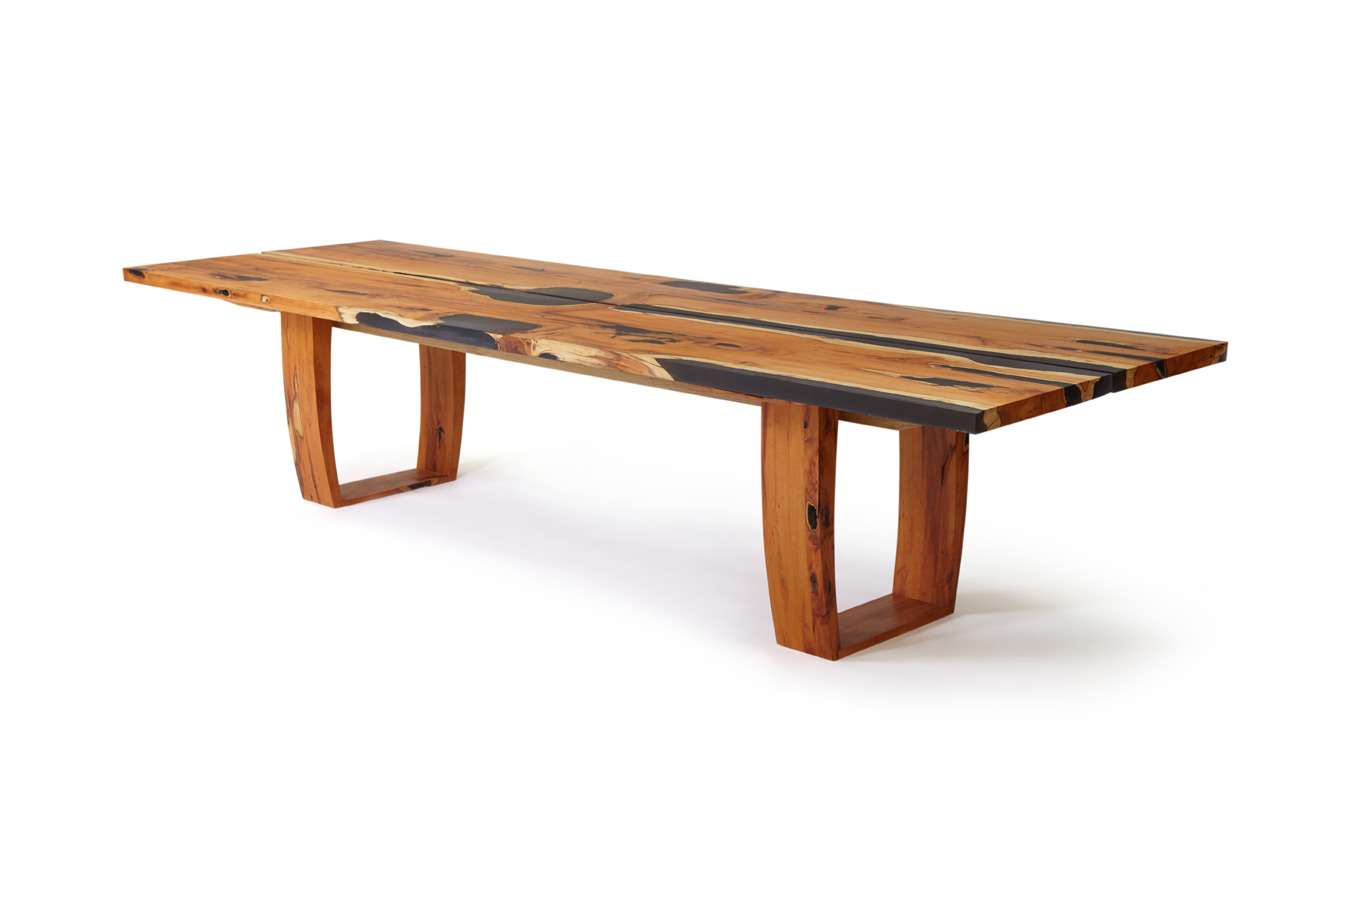 21_Yew-and-resin-dining-conference-table_5.jpg